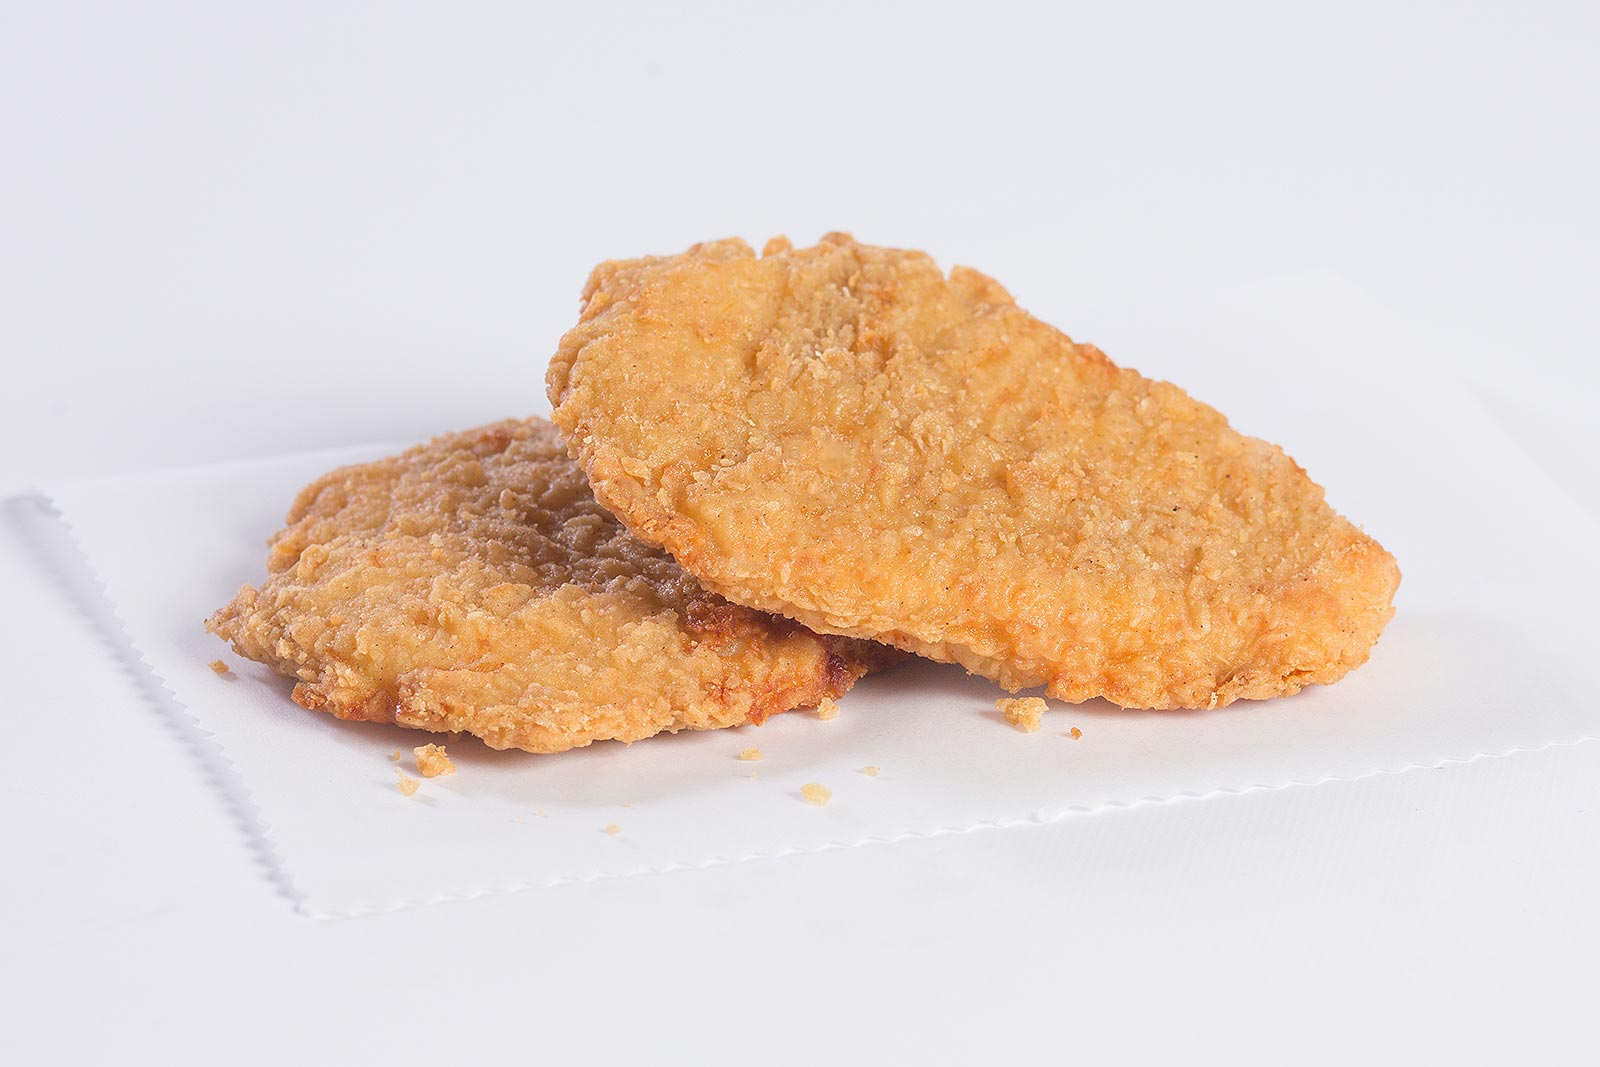 Boneless Ding Breast Fillets image